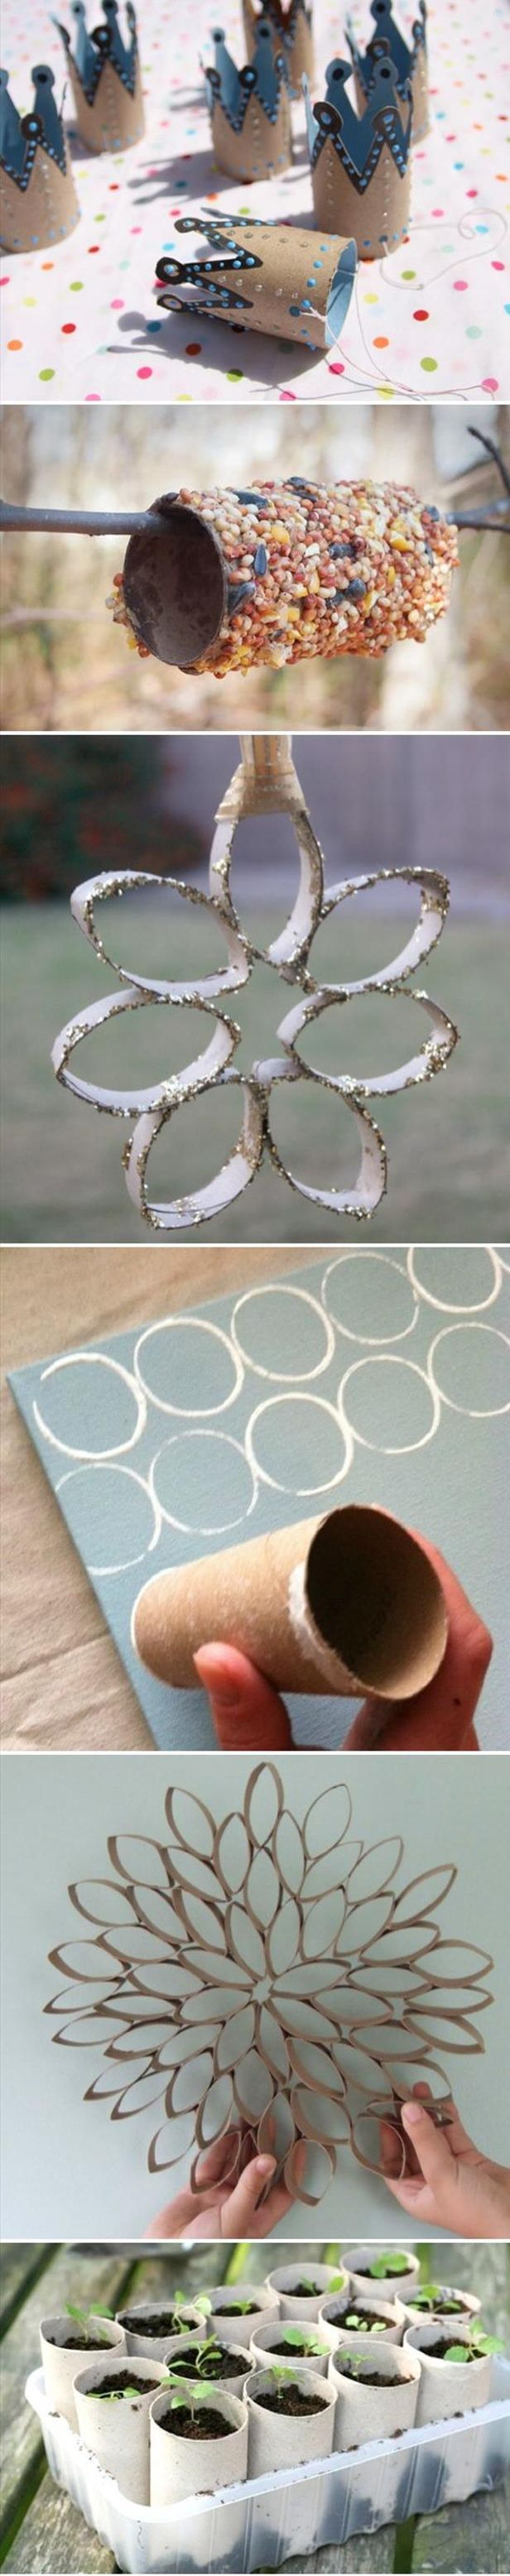 toilet roll craft ideas